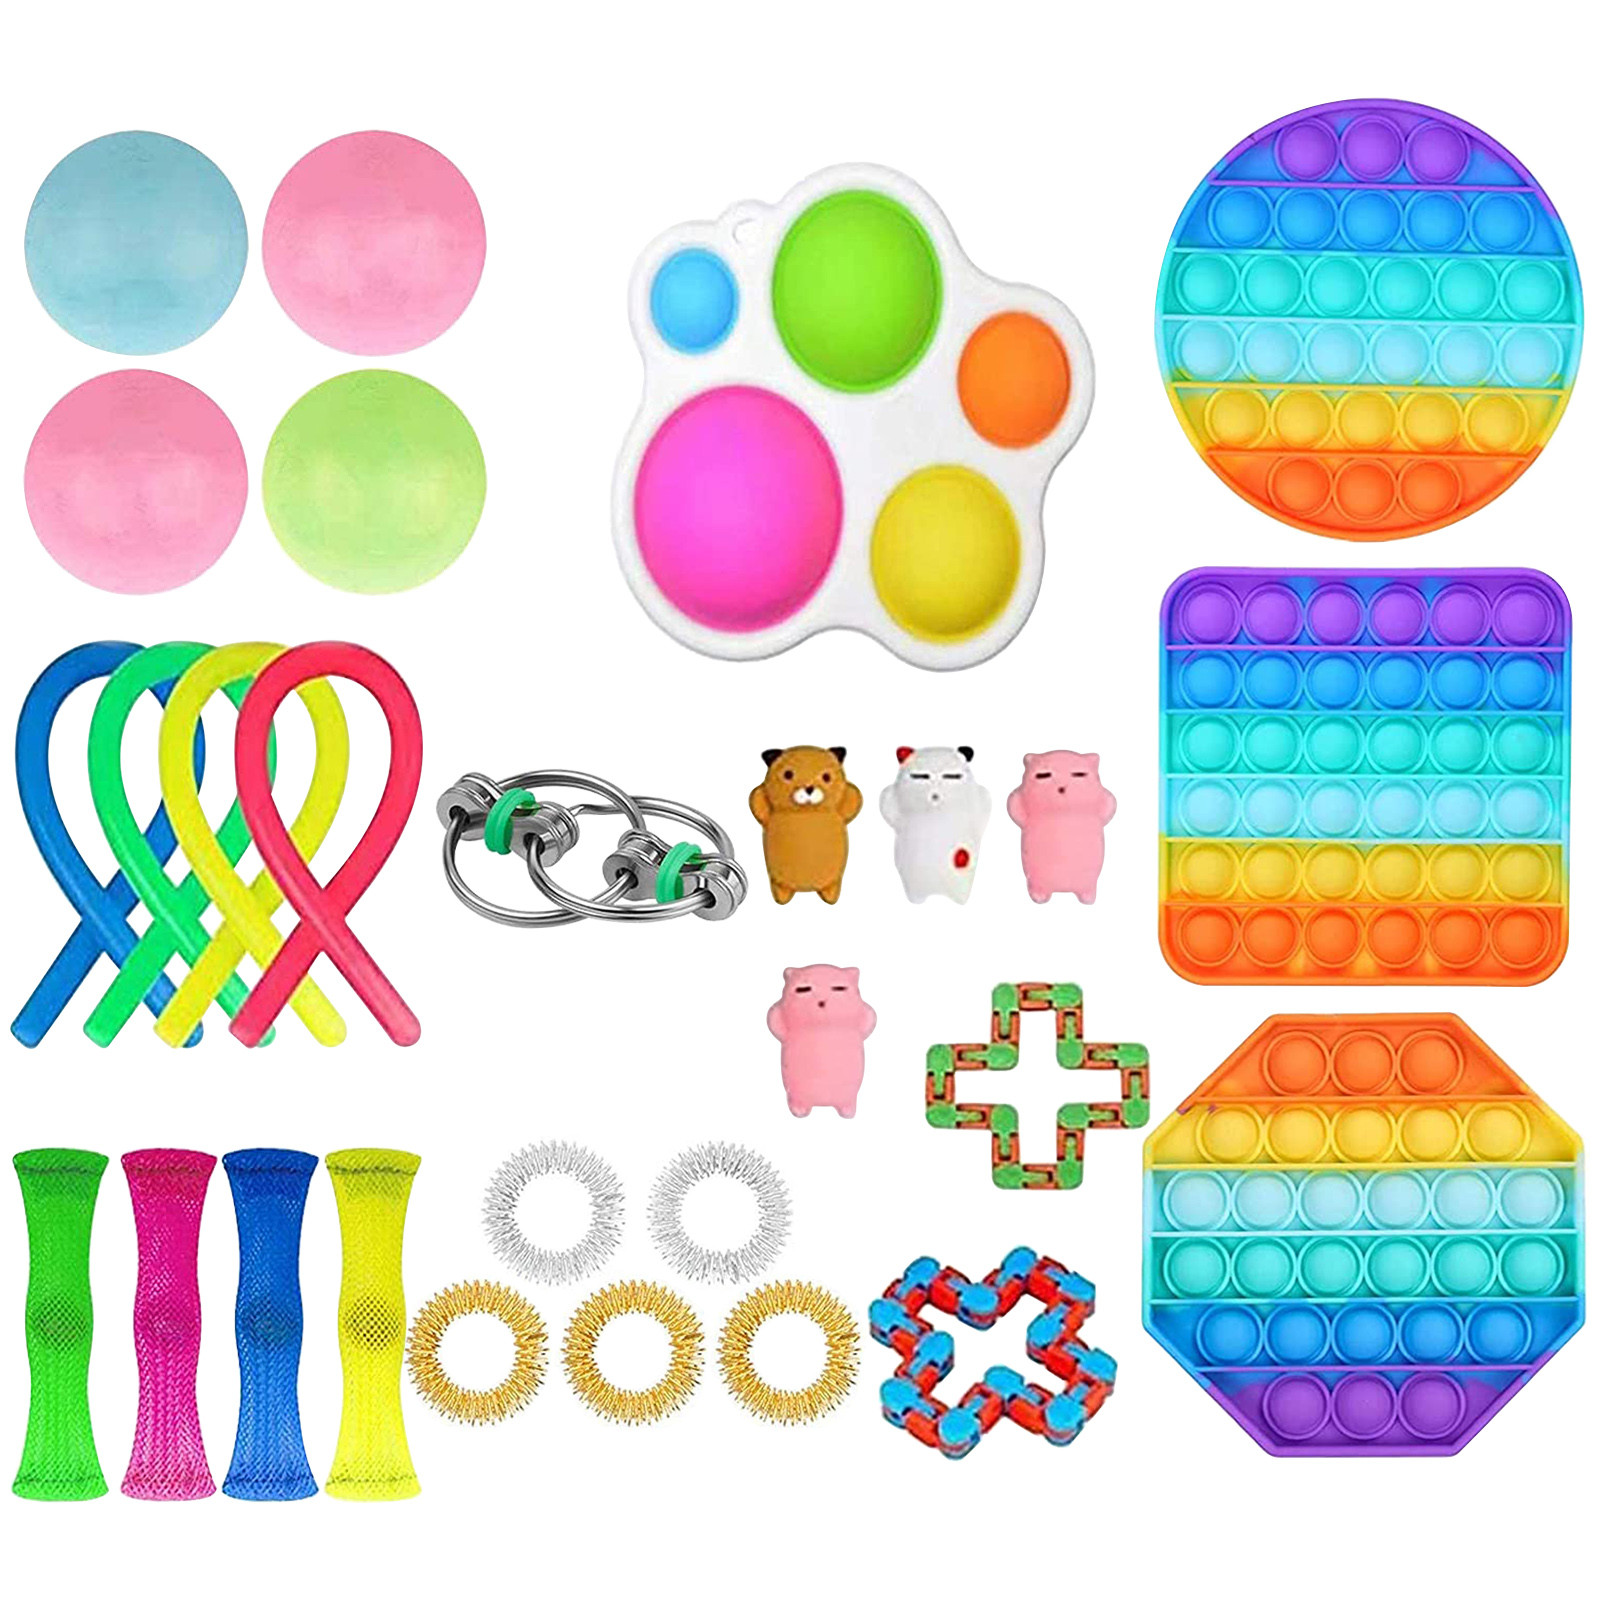 29/25Pcs Fidget Toy Set Cheap Sensory Fidget Toys Pack for Kids or Adults Decompression